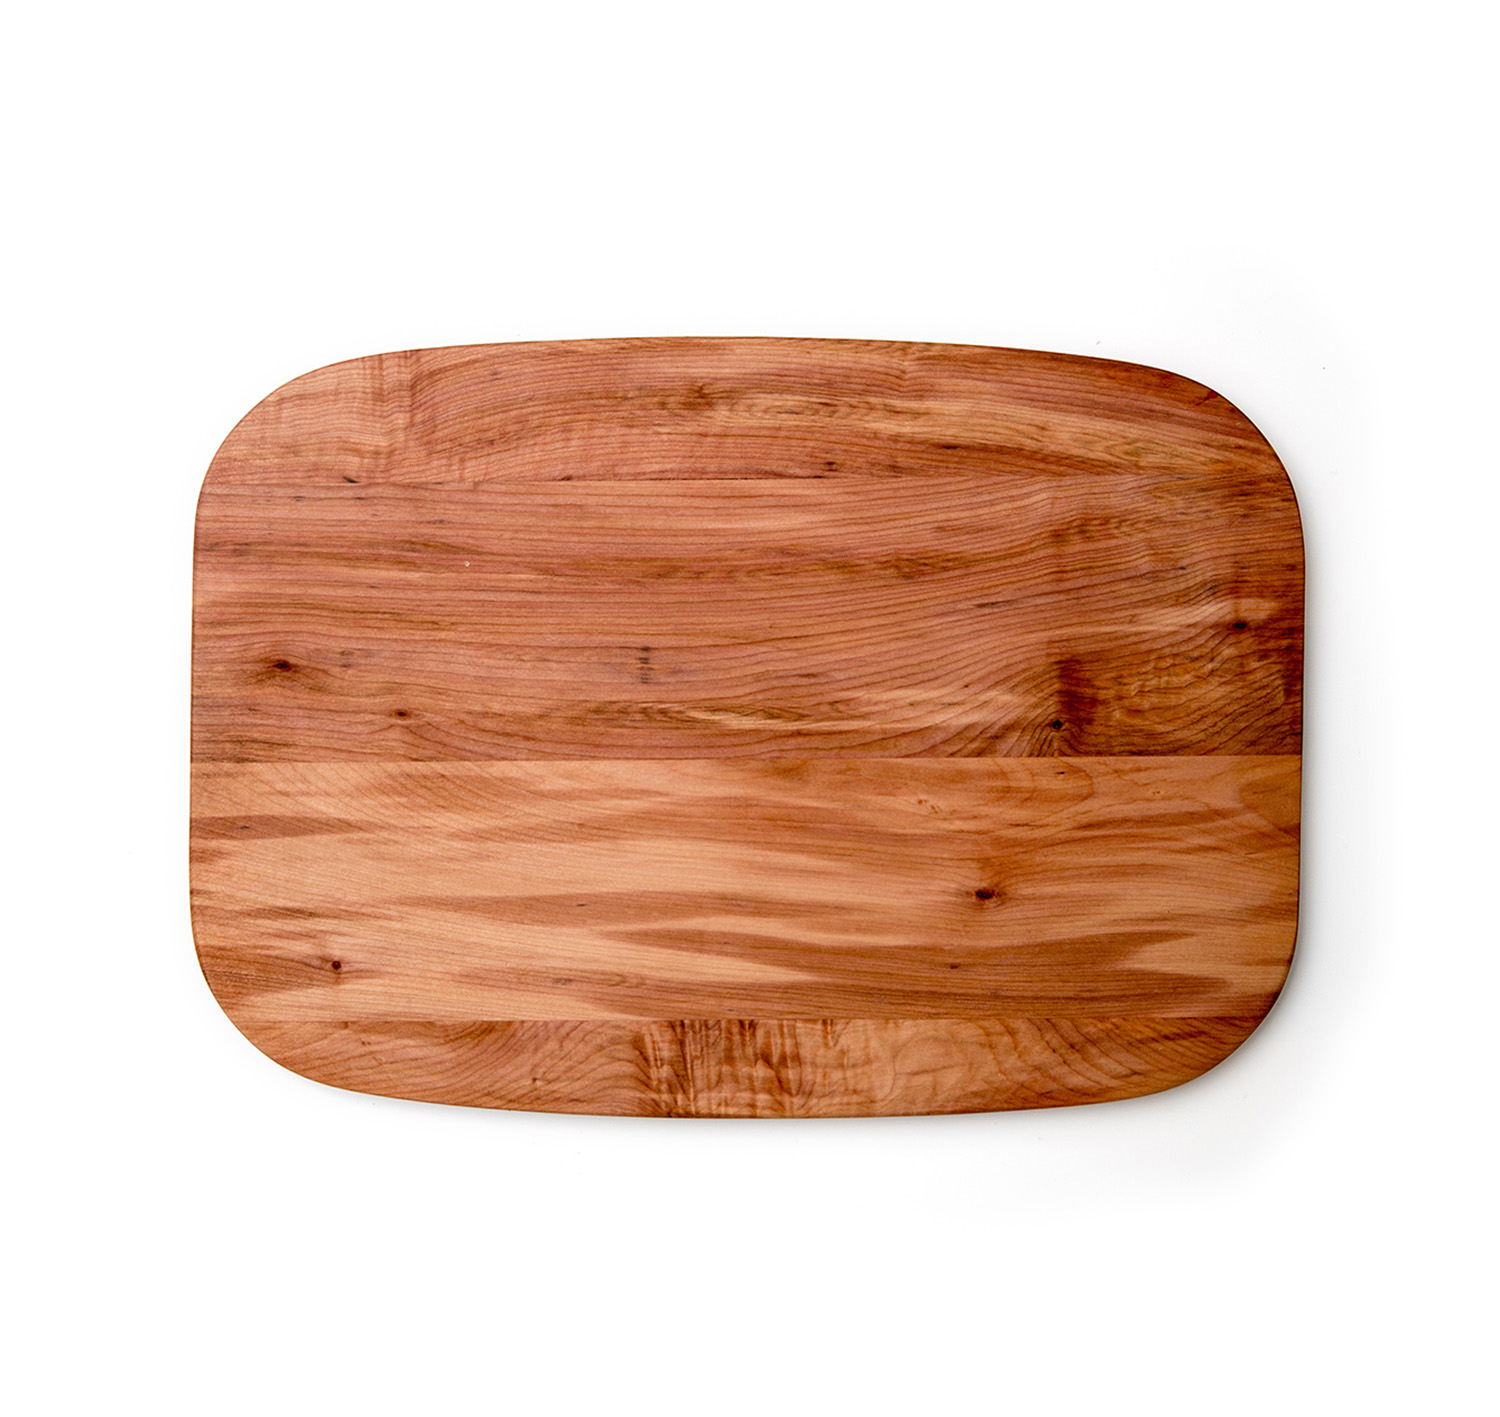 Myrtle chef board